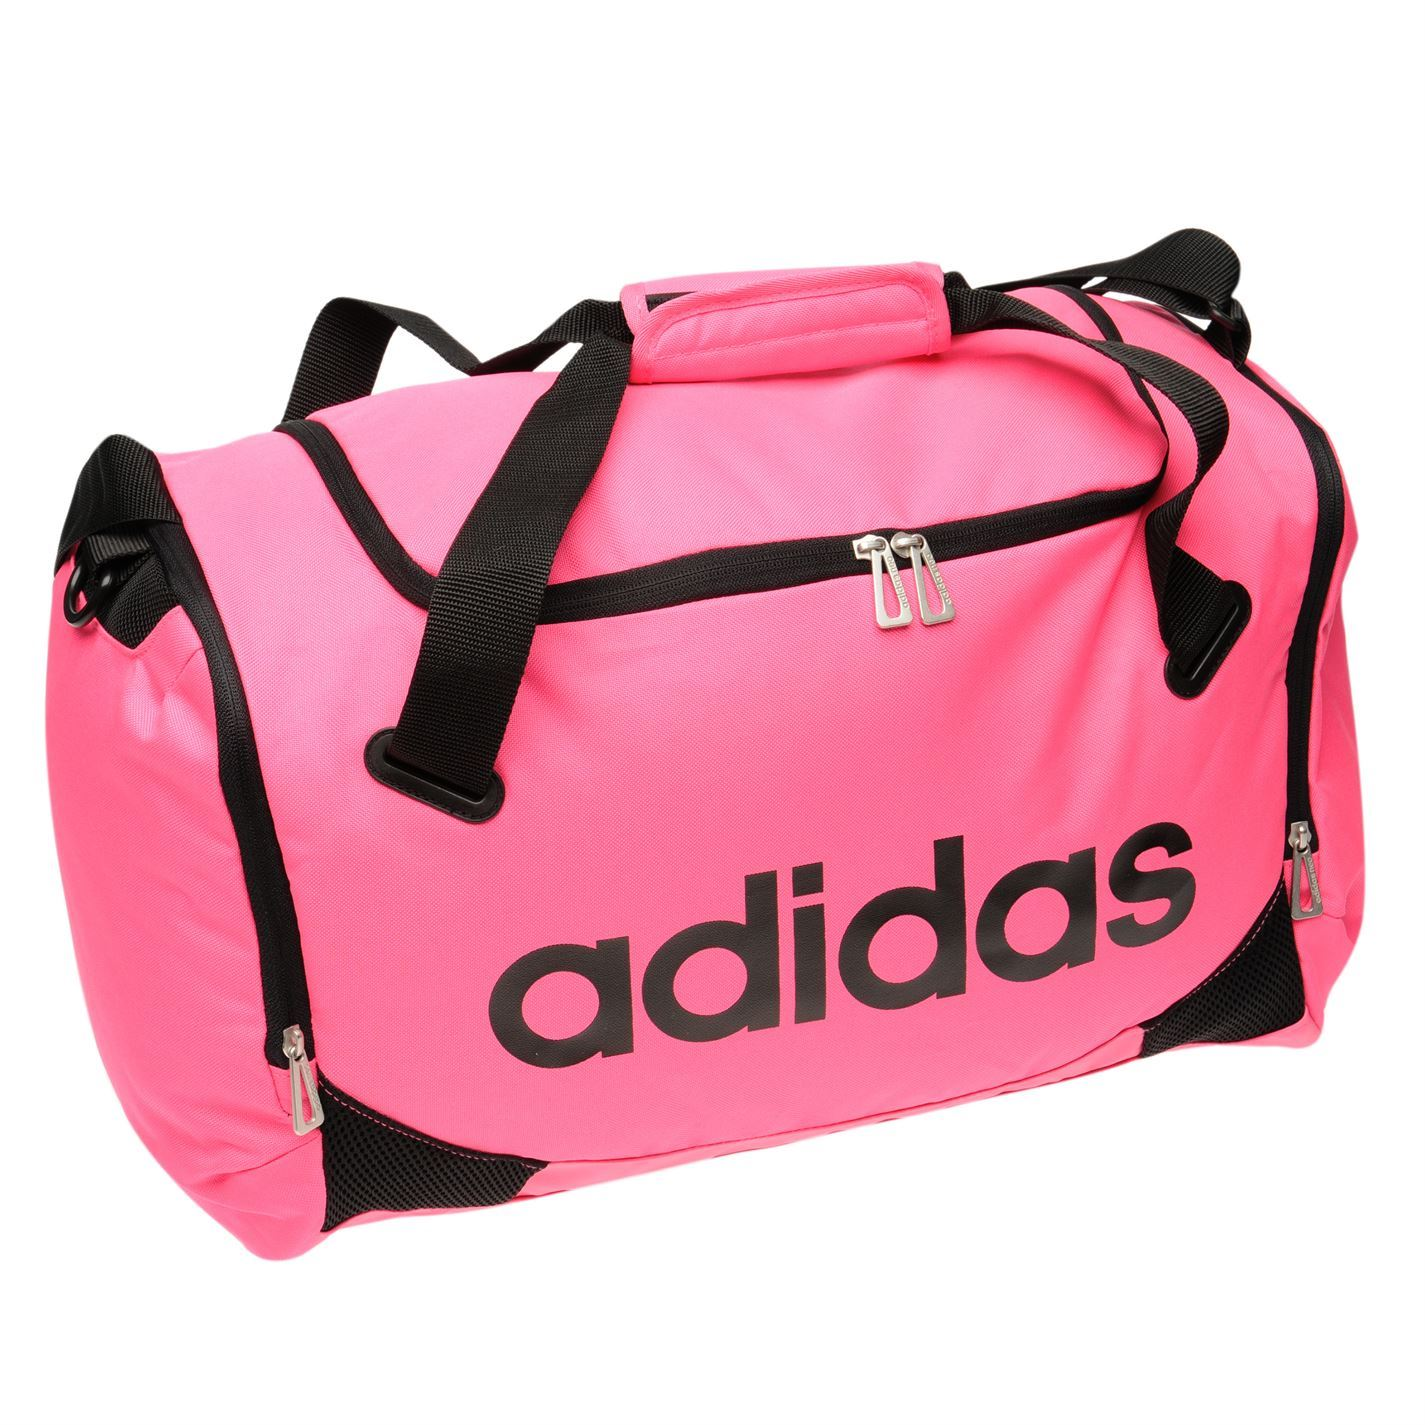 637a646930572 ... Adidas Lined Small Team Bag Pink Sports Gymbag Kitbag ...